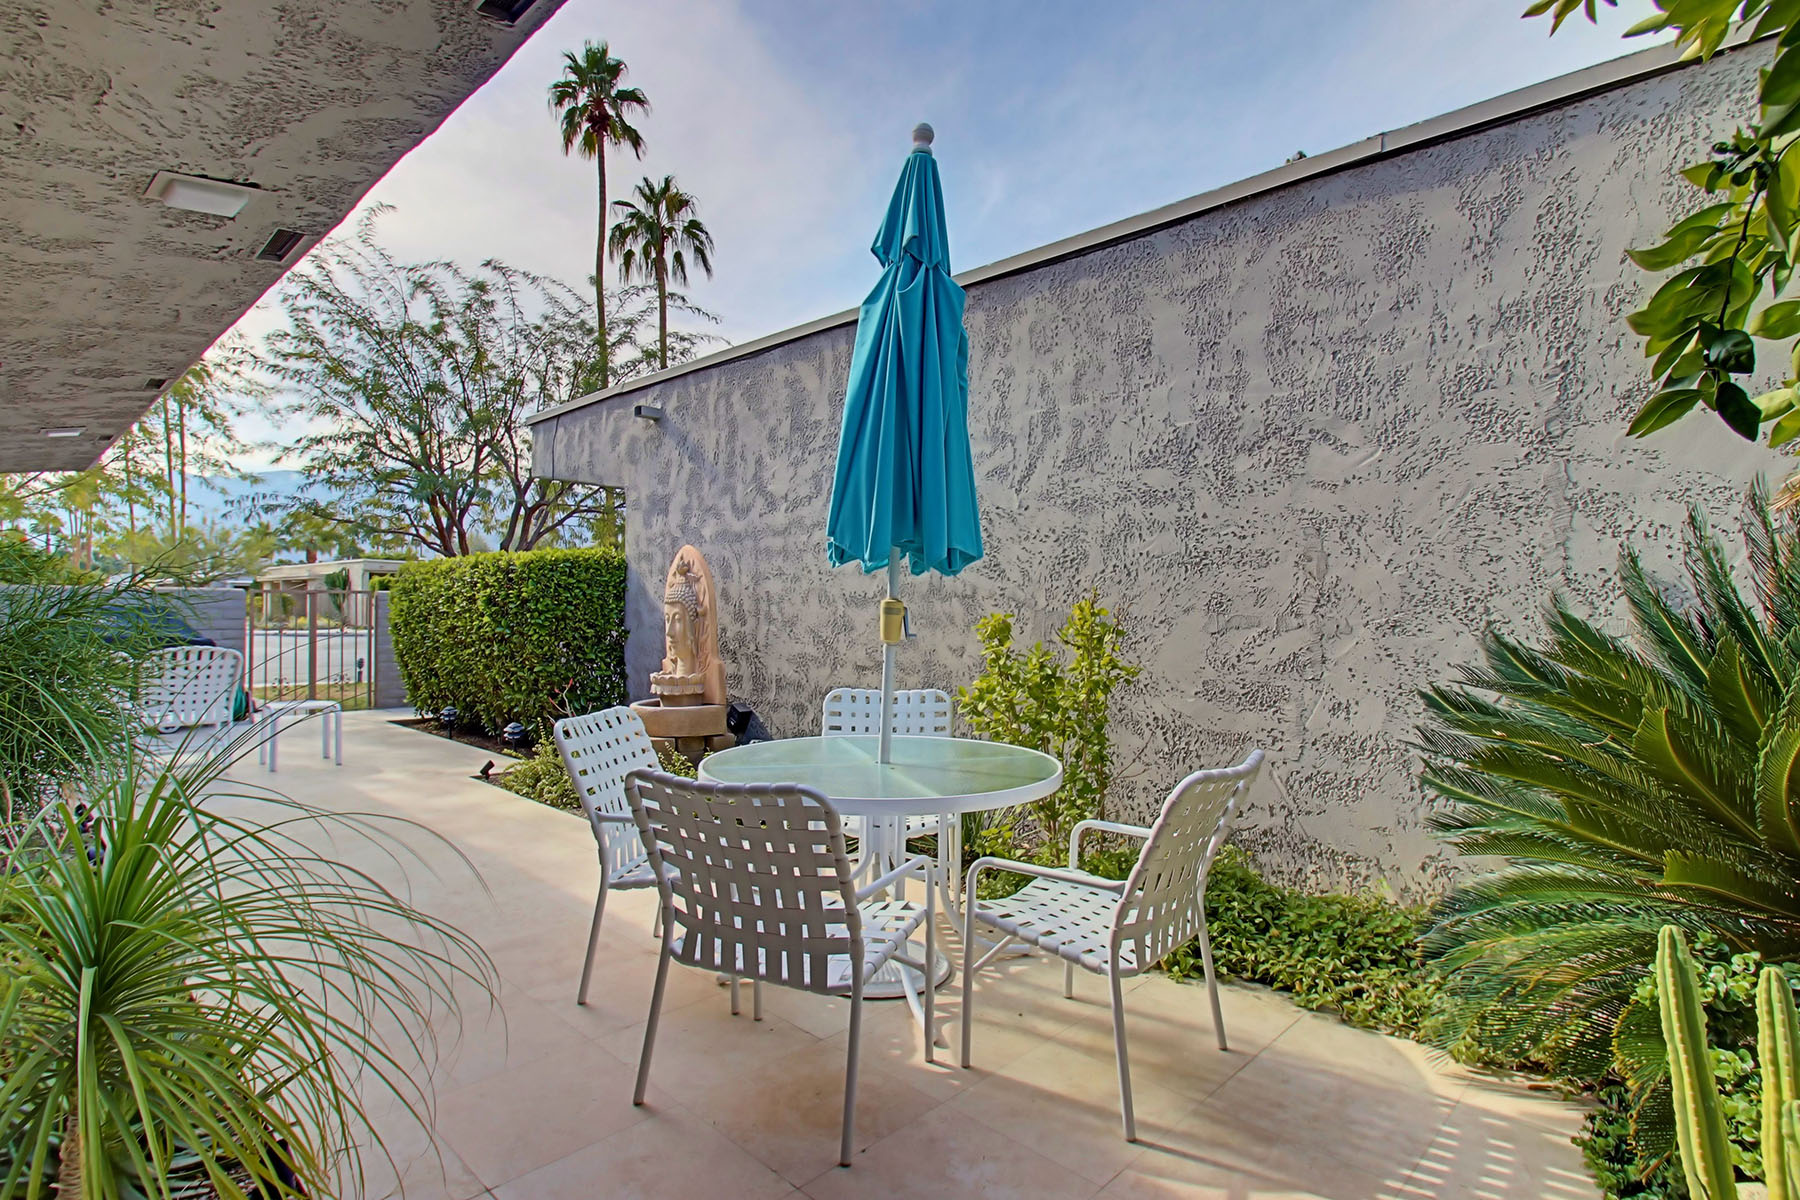 Condominium for Sale at 1111 East Ramon Road #60 Palm Springs, California, 92264 United States